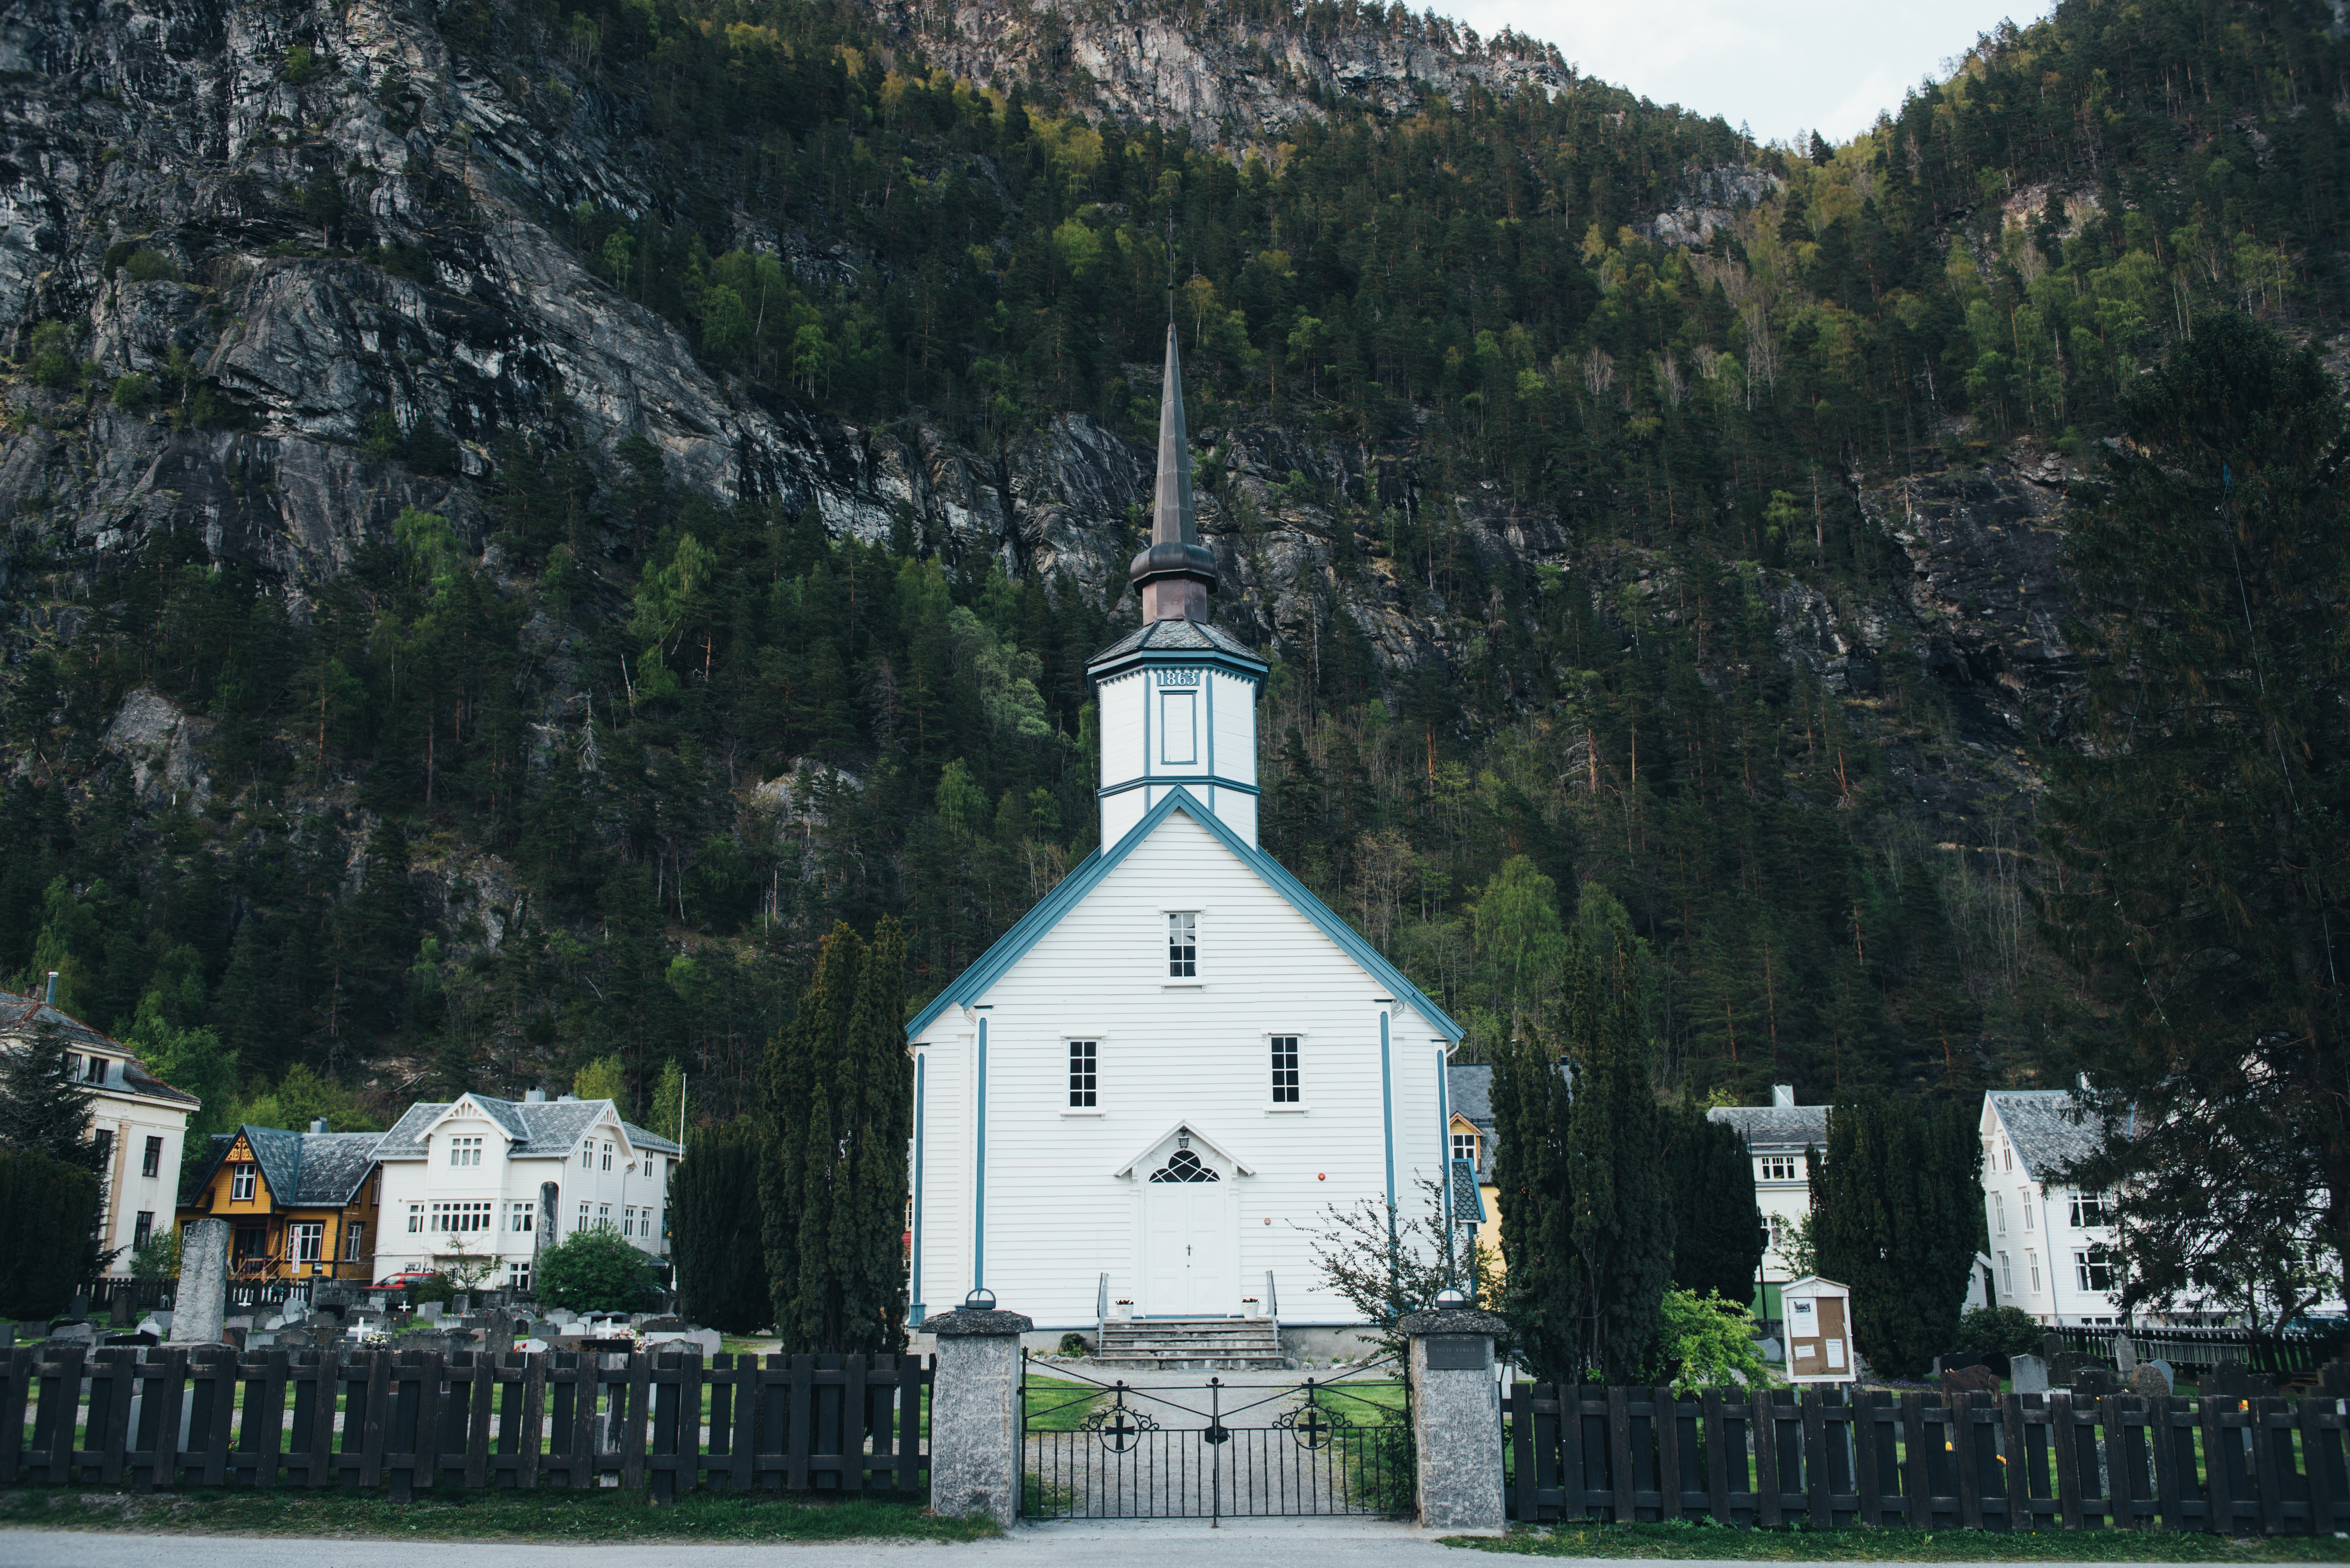 Sister churches needed for Abkhazian congregations